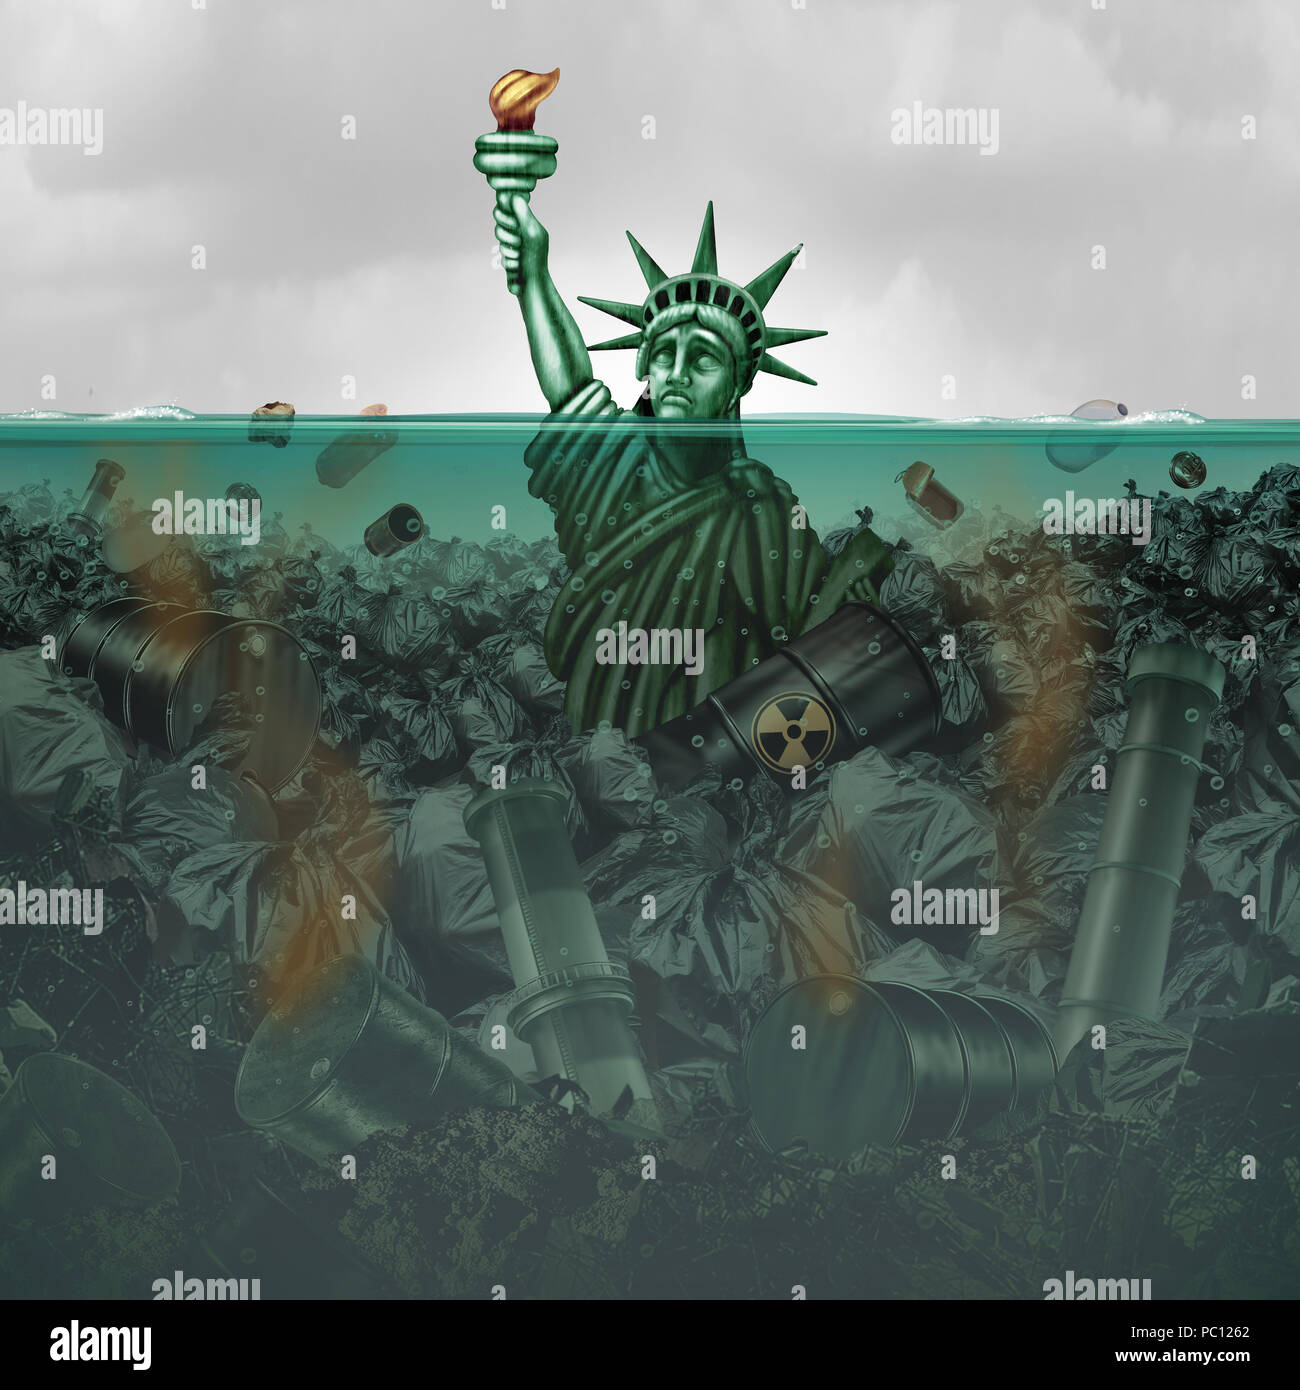 Pollution crisis USA and contaminated water in the United States as an American statue drowning in toxic water full of  industrial waste. - Stock Image